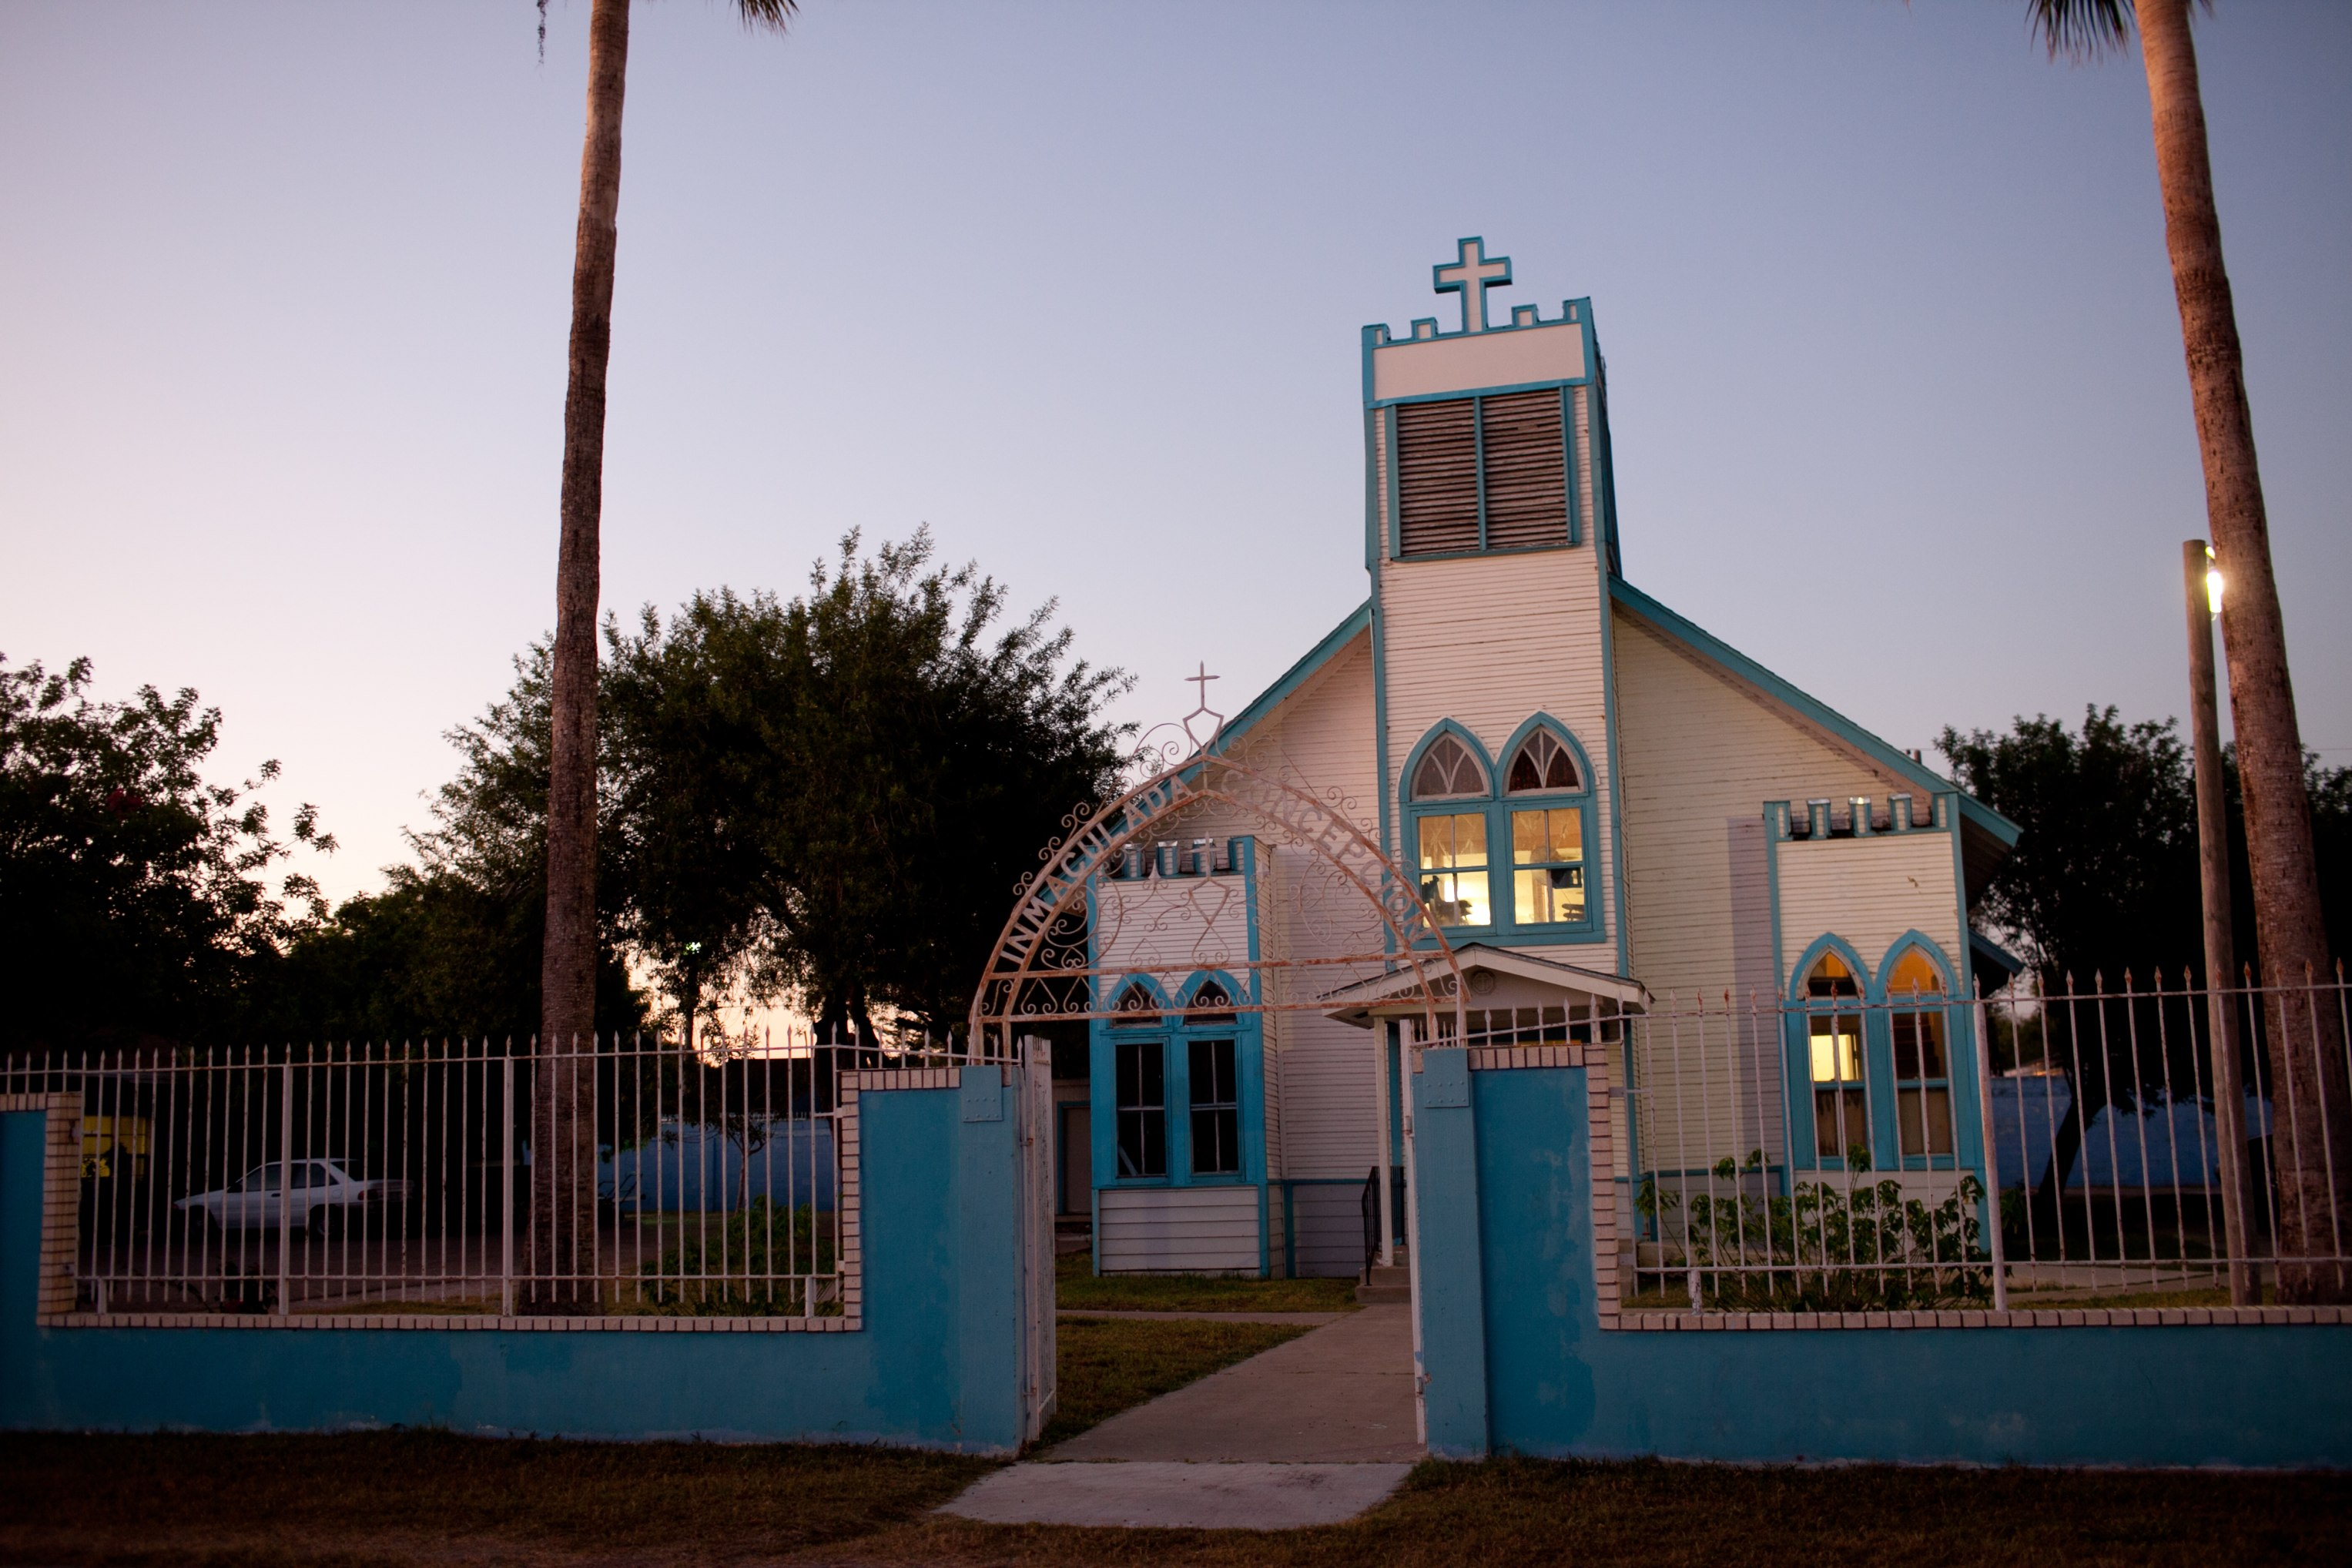 This unassuming mission Church is a force of change in Lopezville.